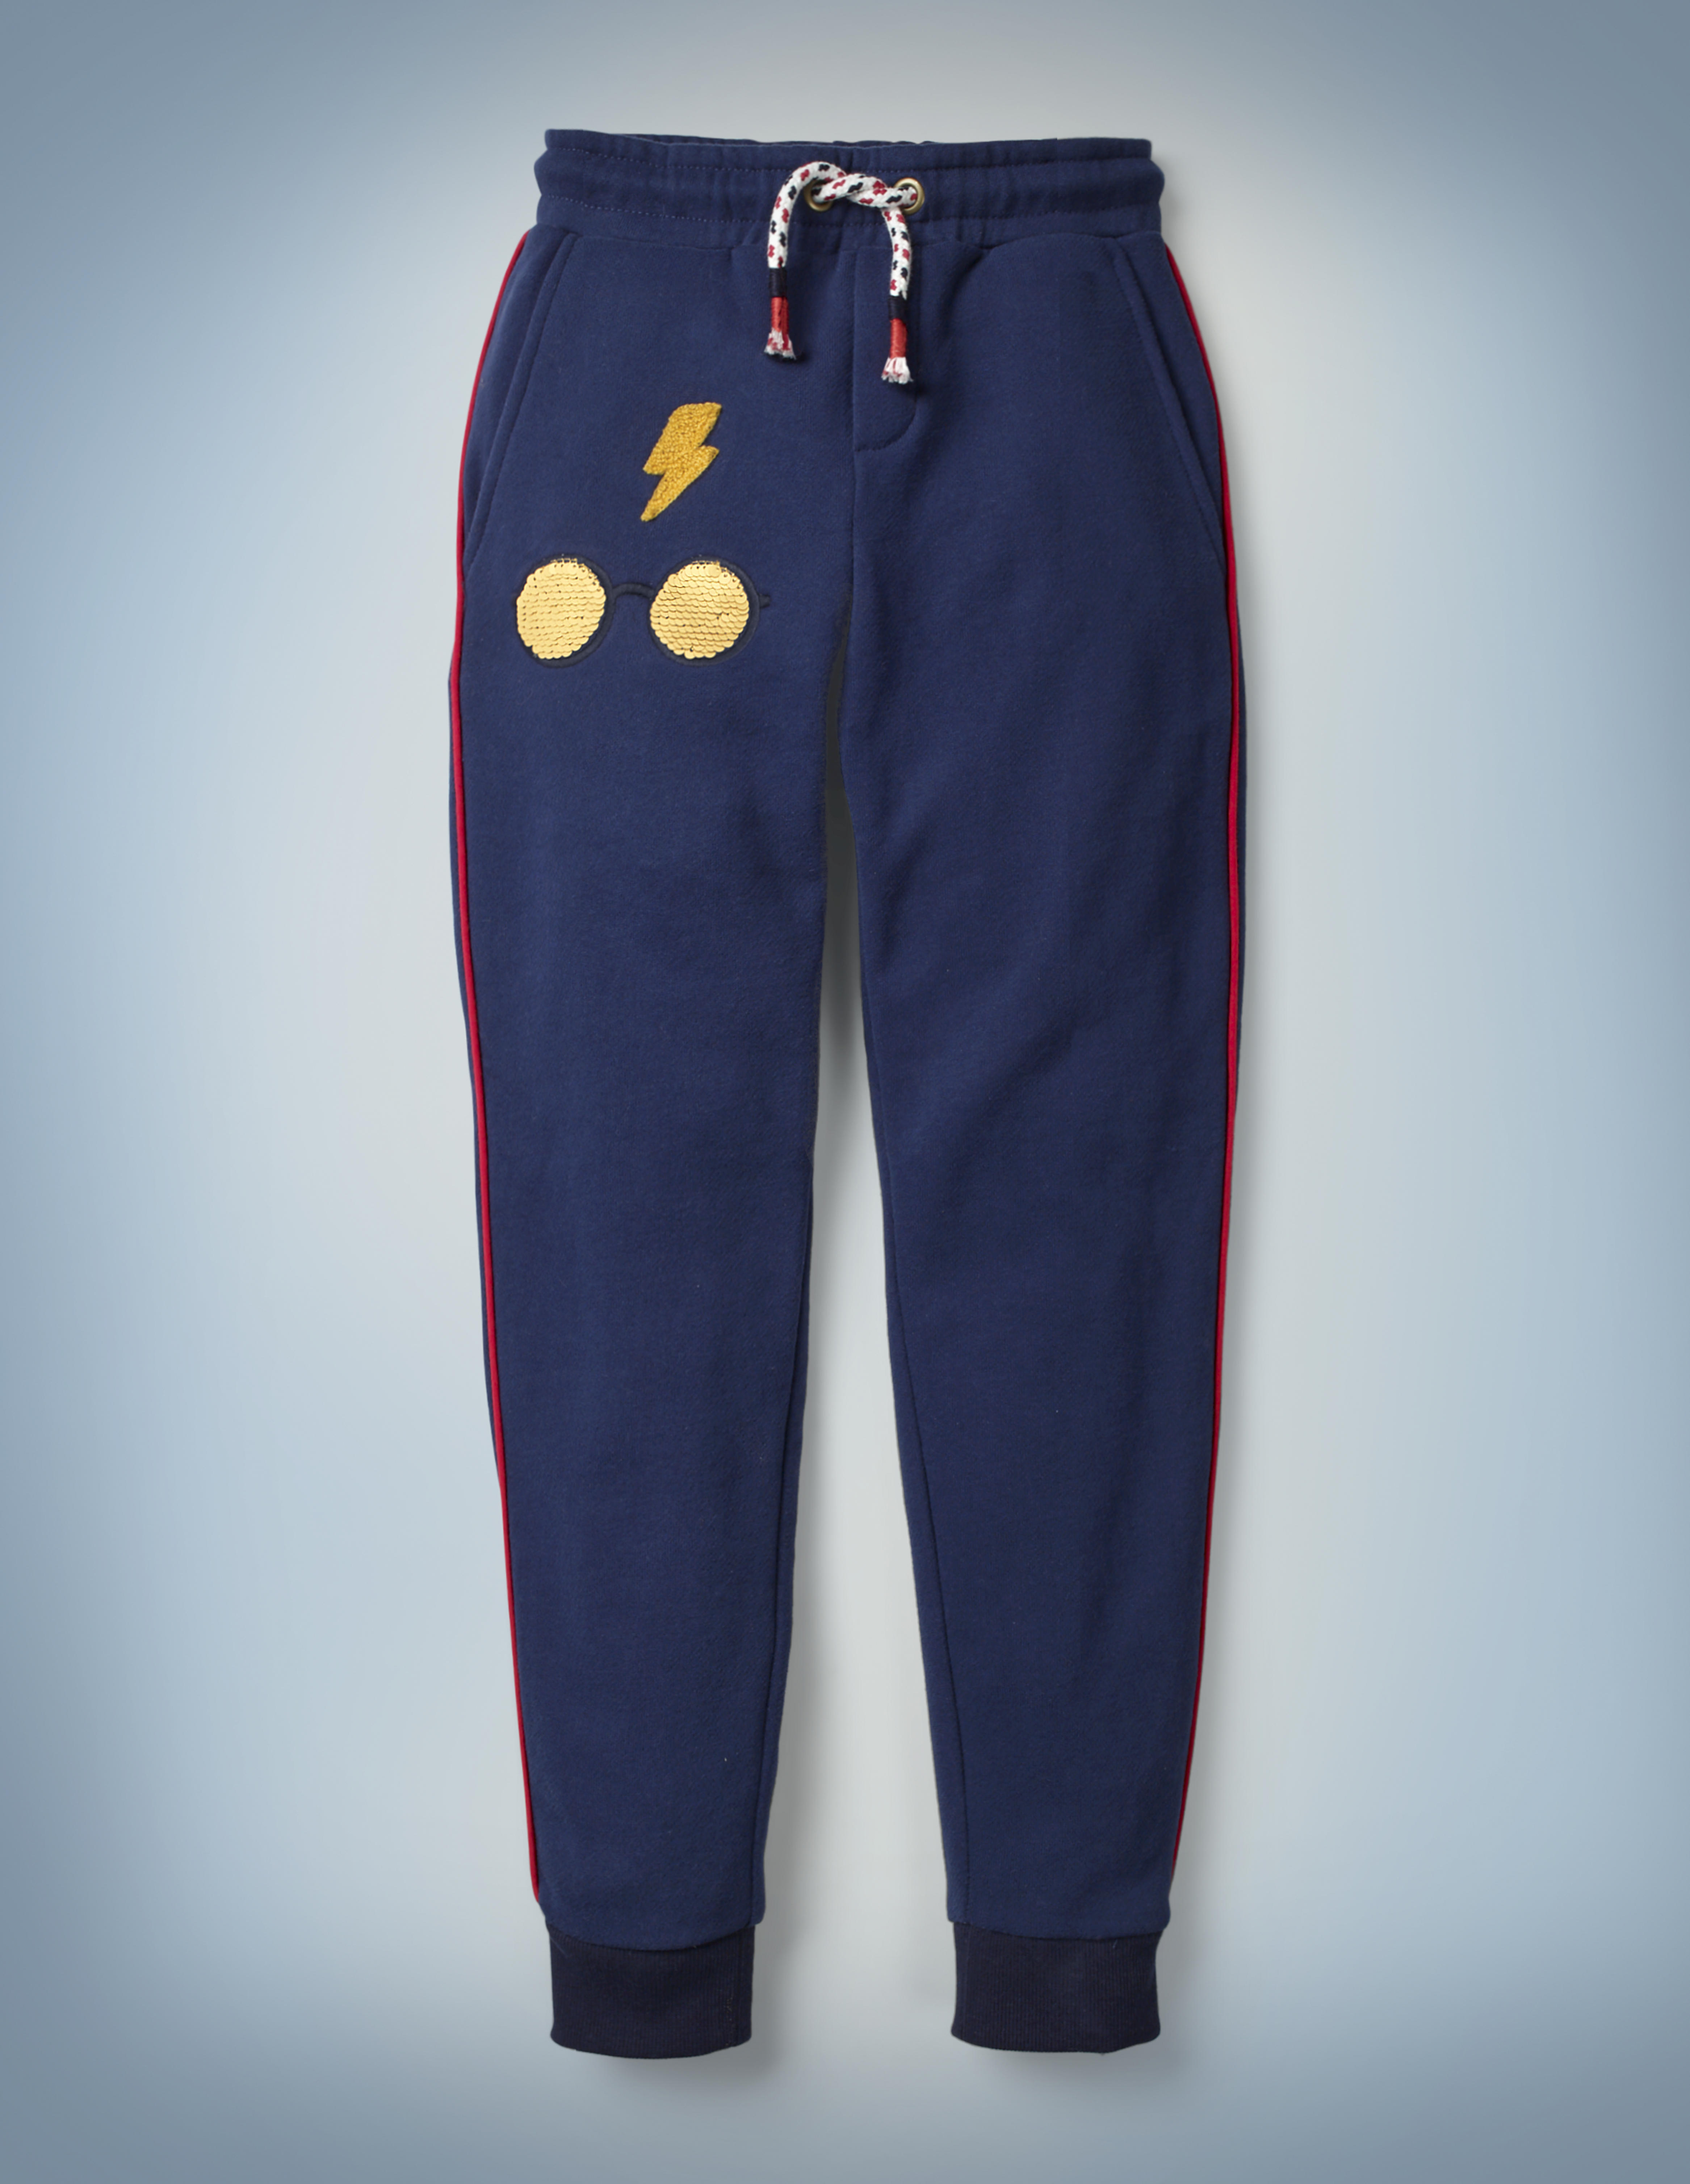 The Mini Boden Transfiguration Sequin Joggers in blue come with a drawstring waist and design featuring Harry Potter's iconic glasses and lightning bolt scar. They retail at £26.